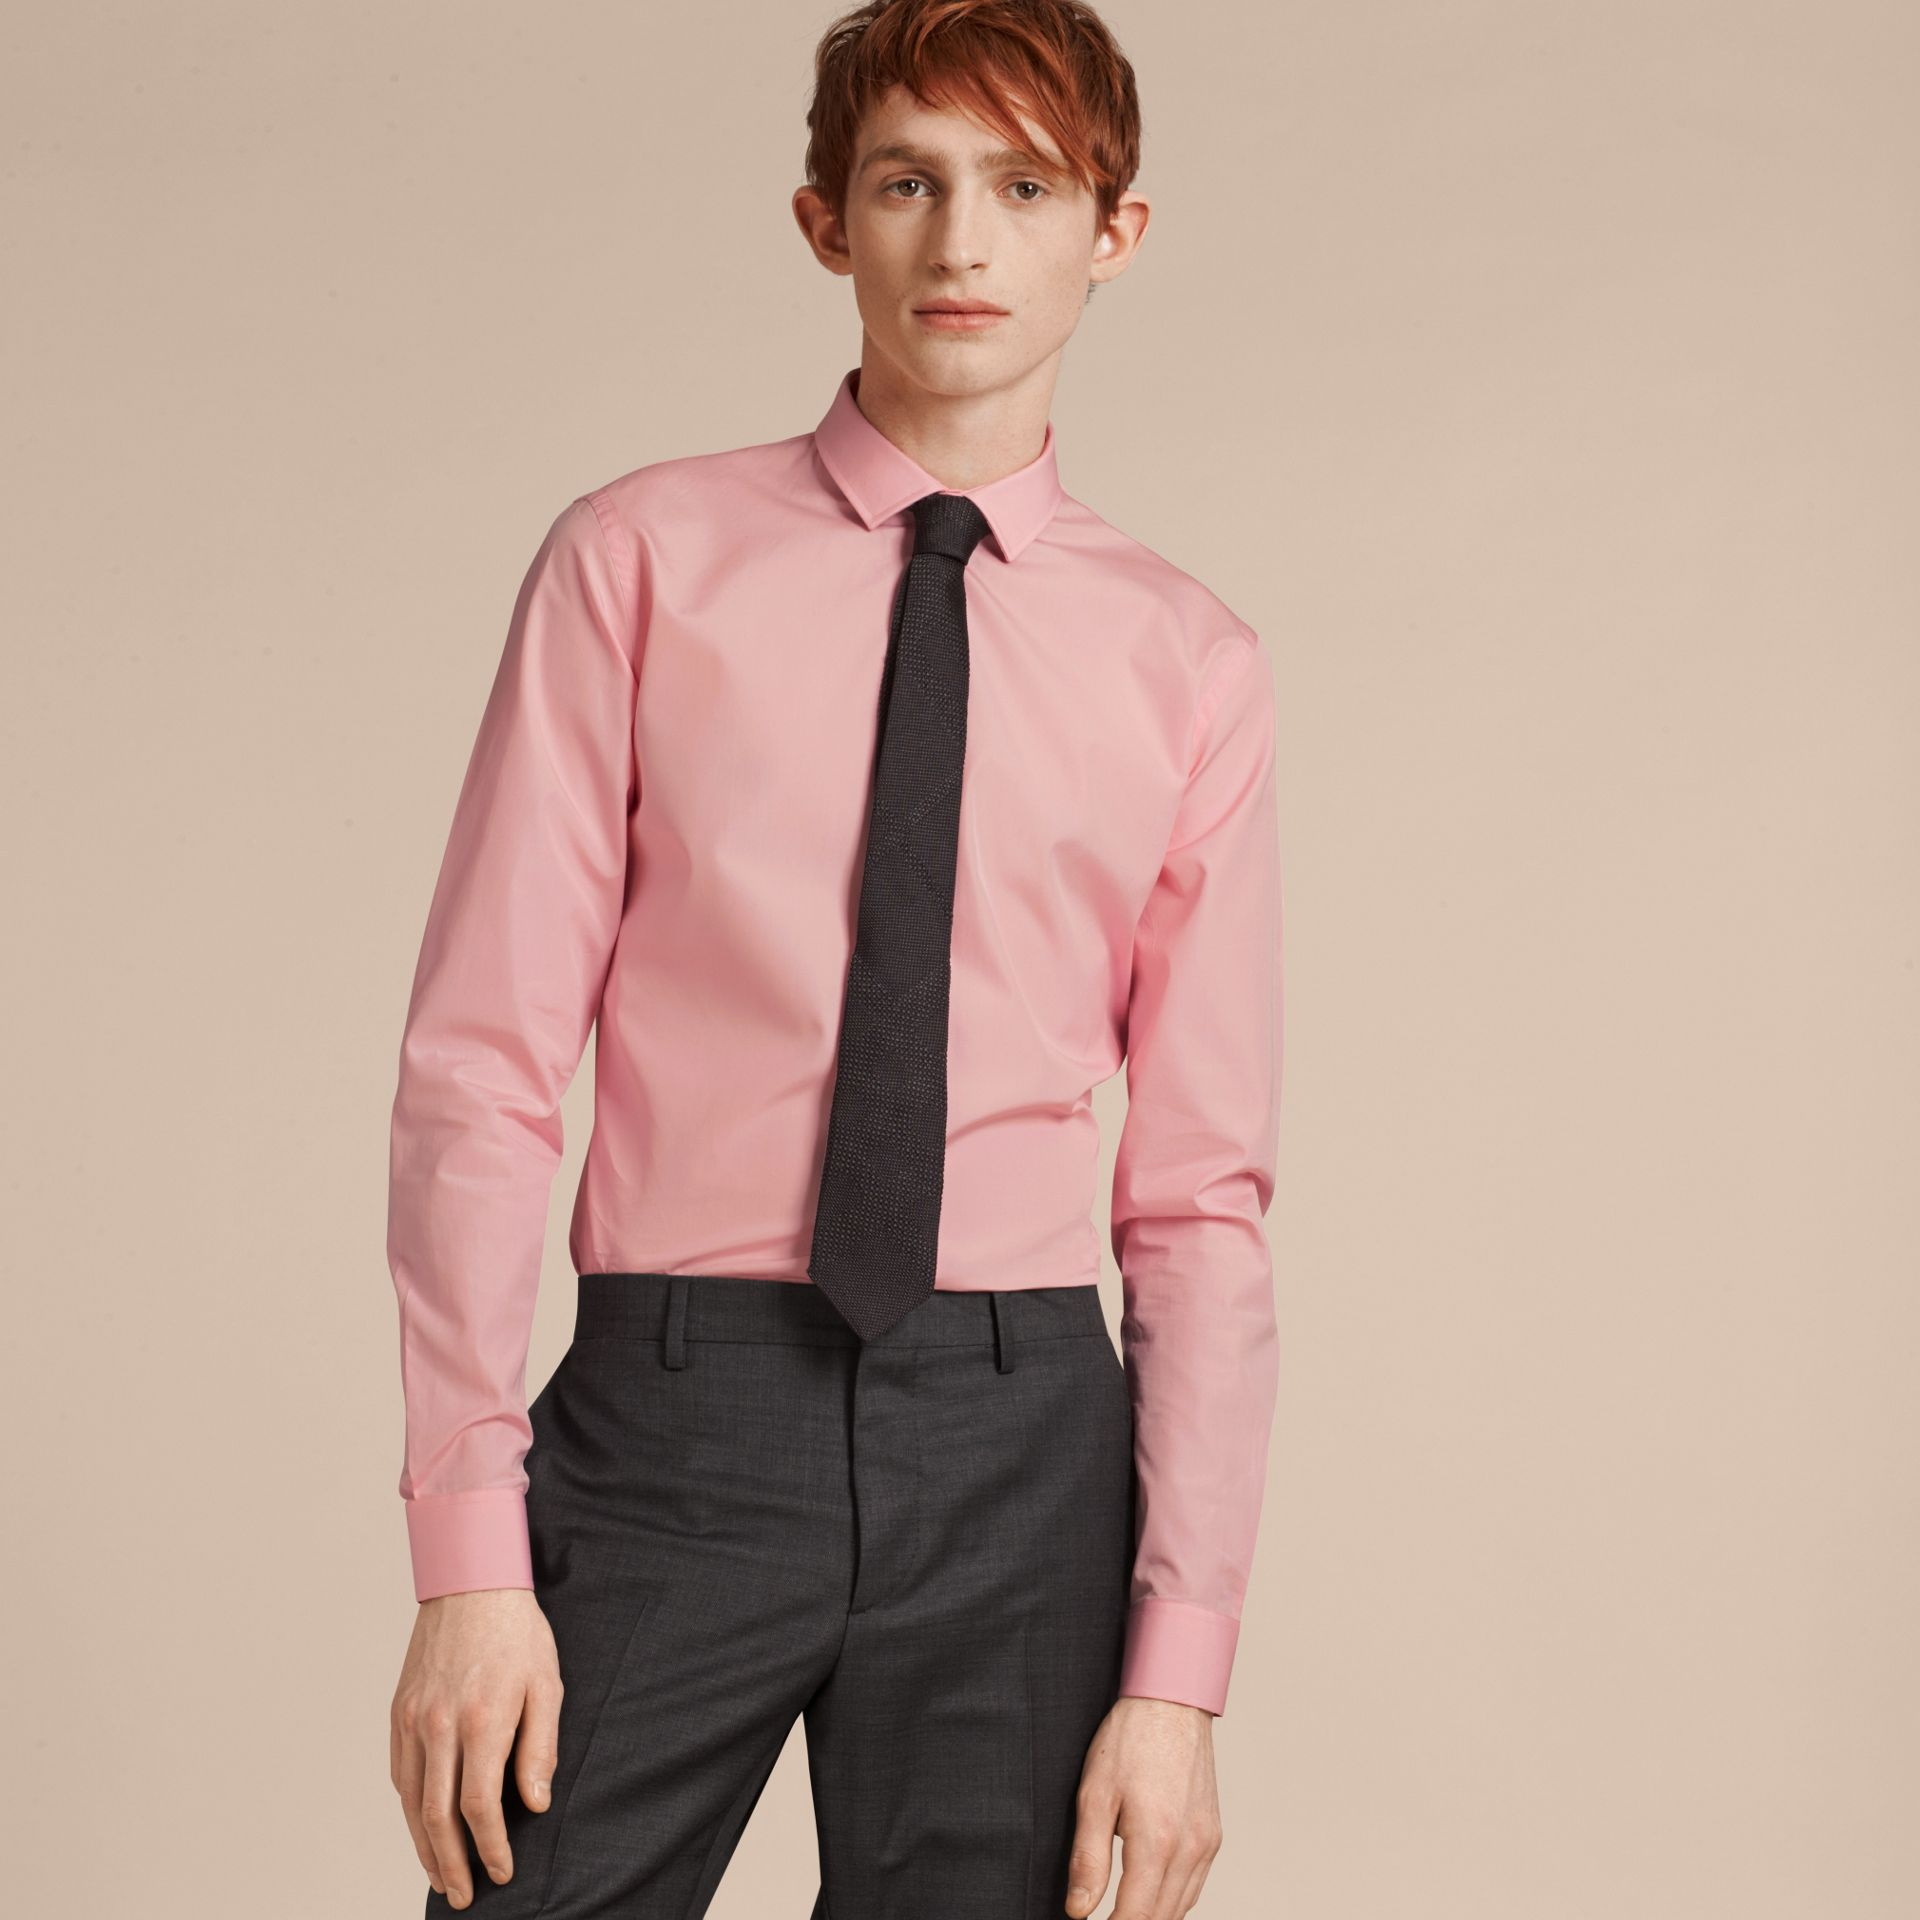 Slim Fit Cotton Poplin Shirt in City Pink - Men | Burberry - gallery image 1